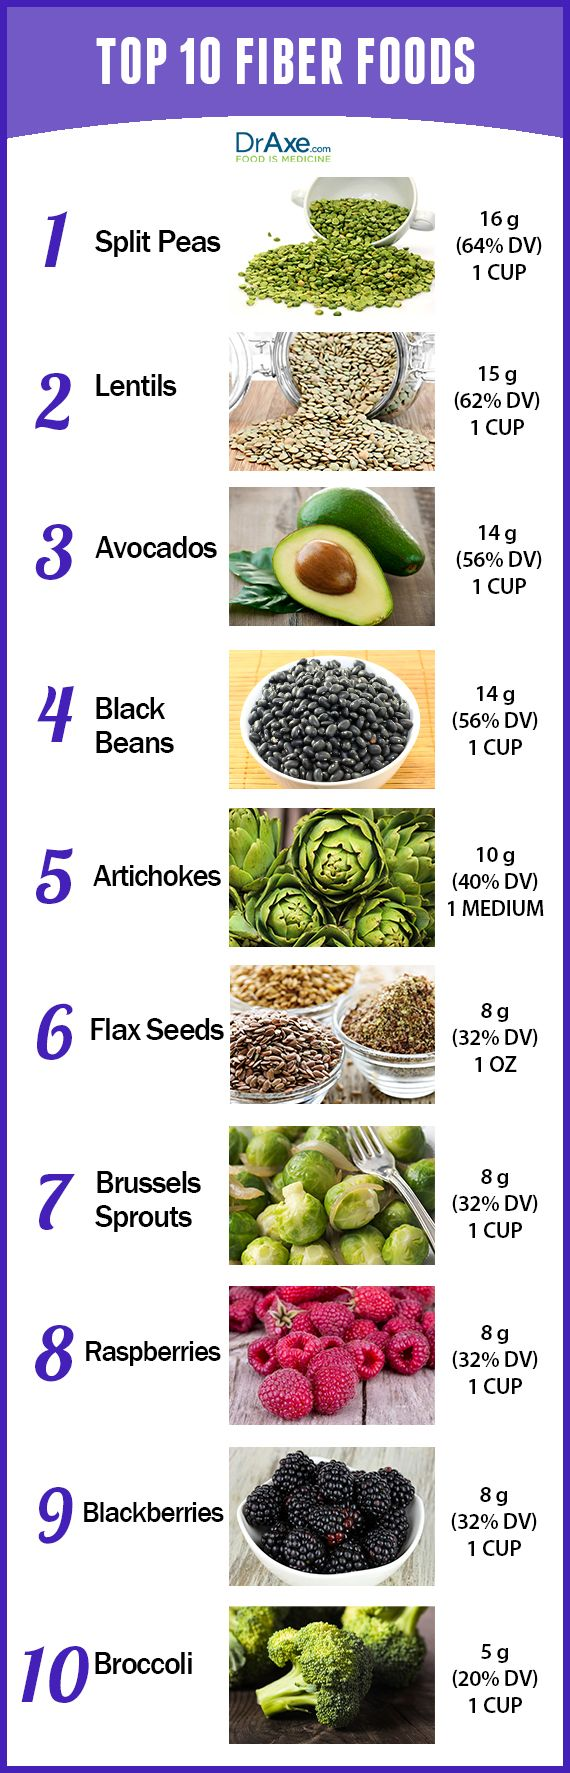 Top 10 High Fiber Foods.High fiber foods can have great health benefits! #Healthyliving #Healthyfood #Fitnees